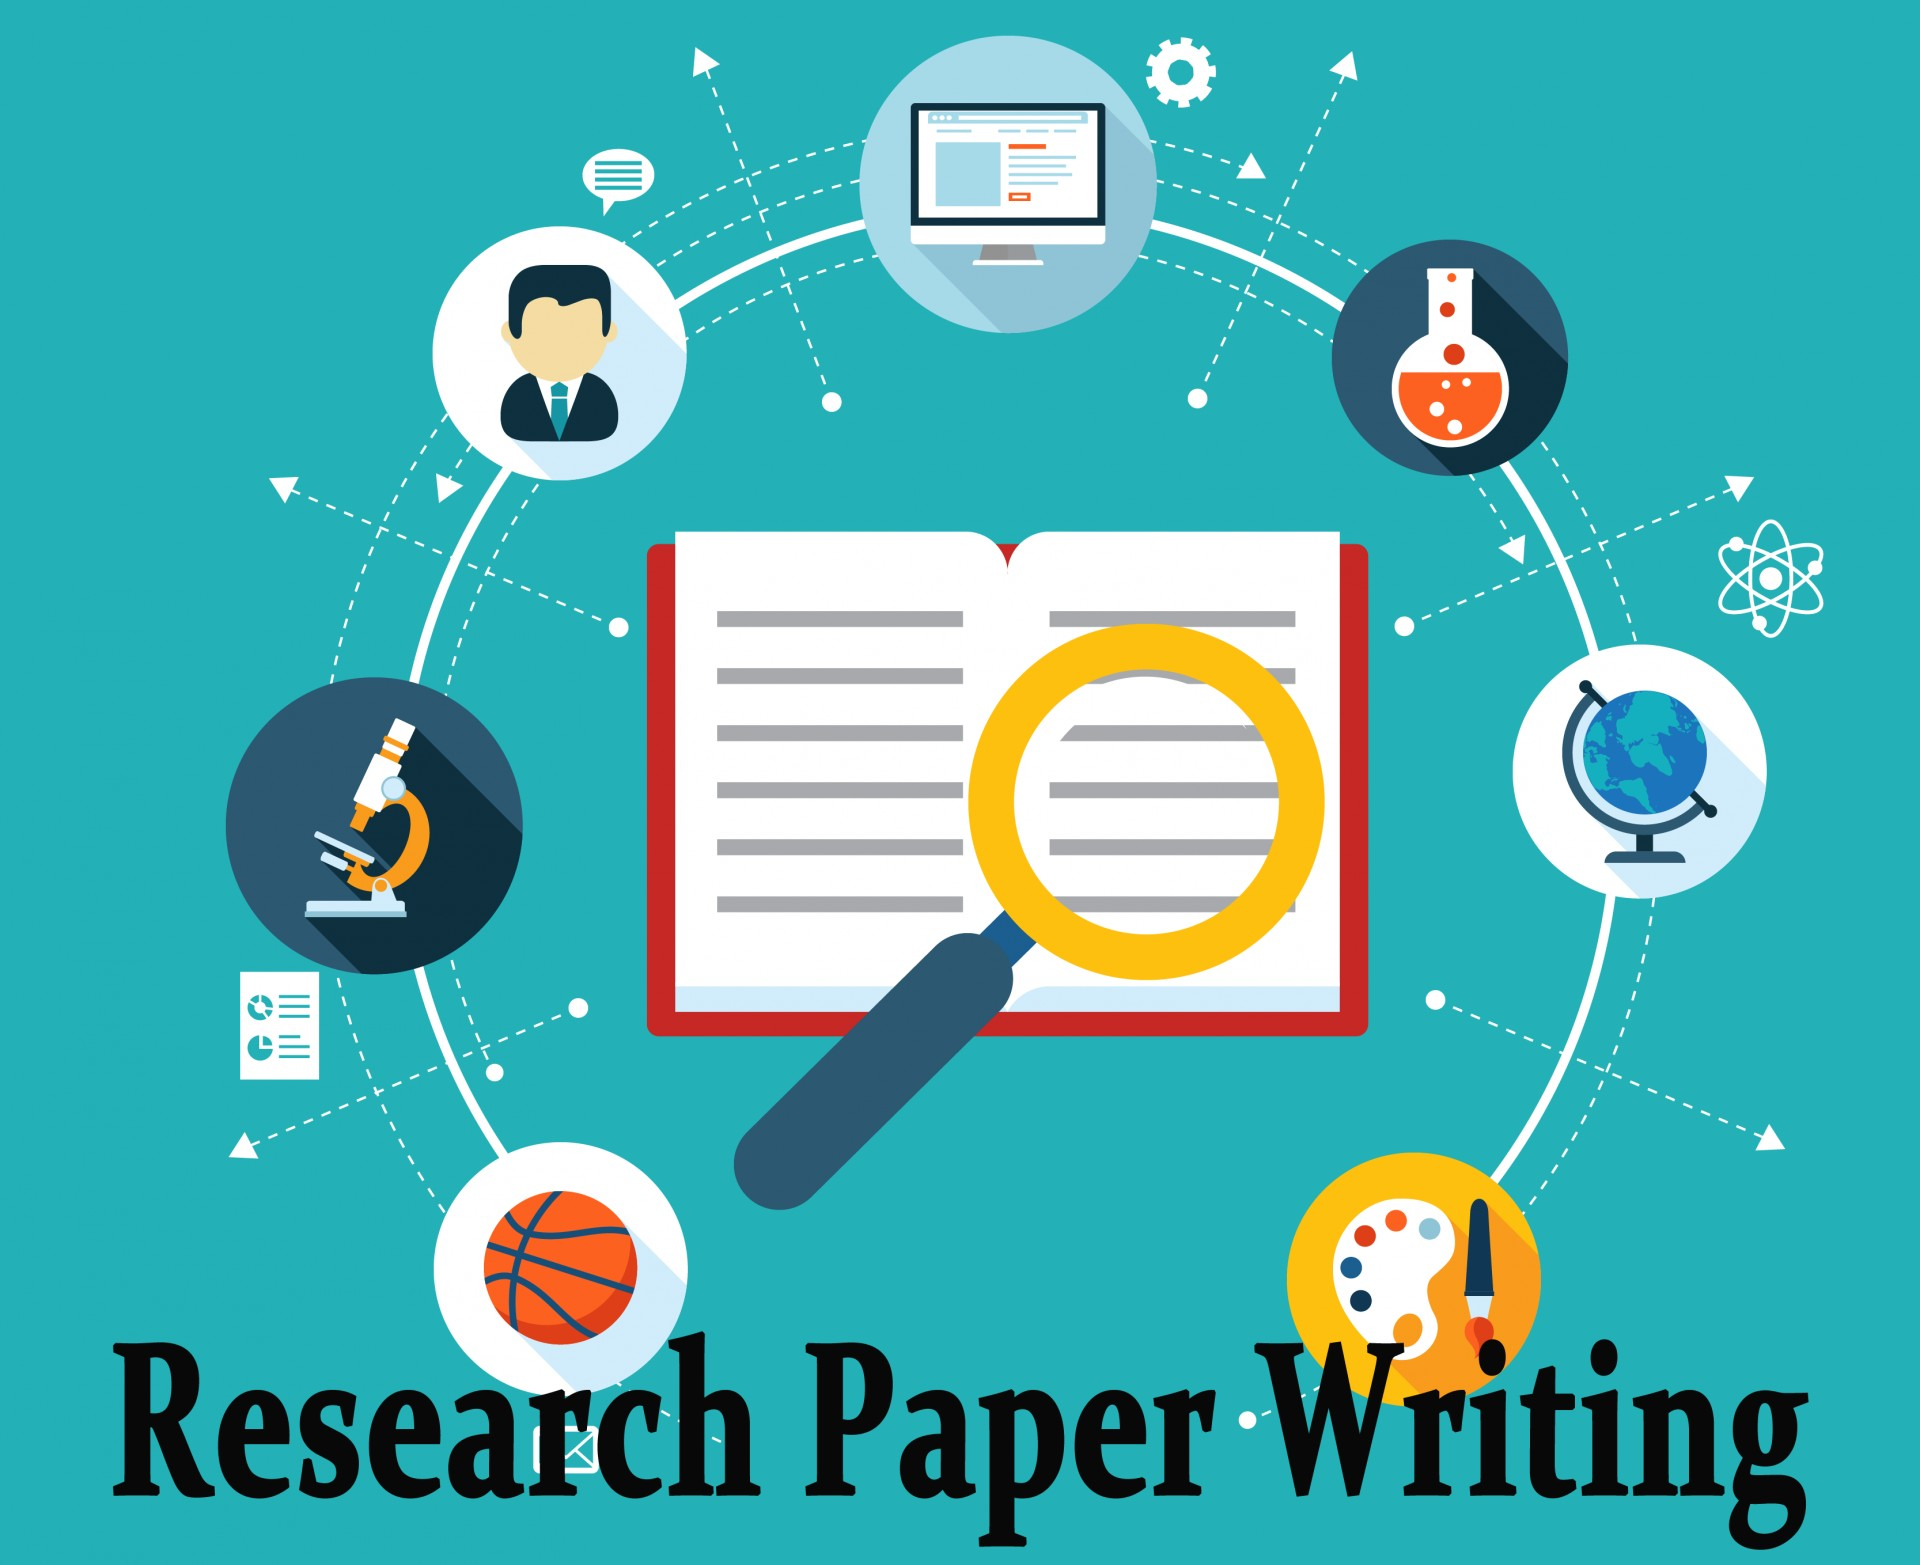 008 Research Paper Help With Papers 7 1 Astounding Websites That Writing Nursing 1920